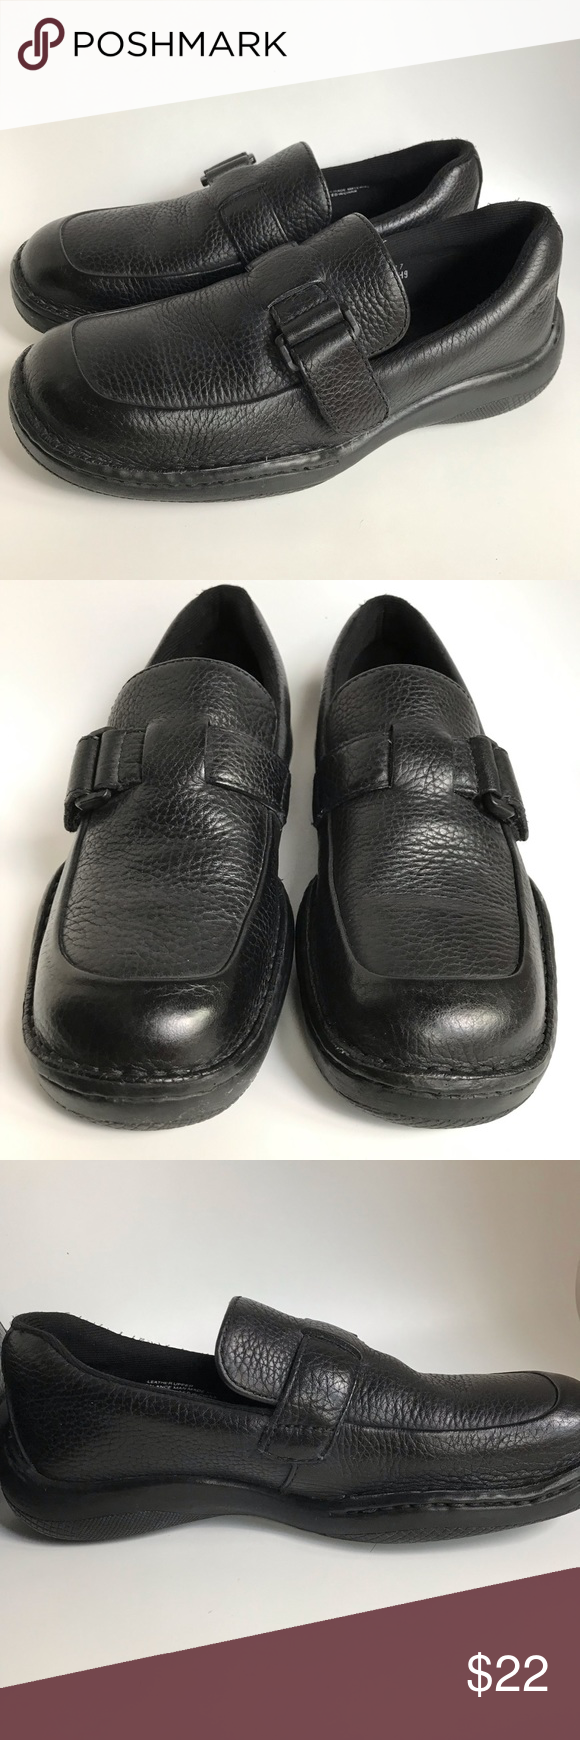 Black loafers, Loafers, Leather loafers